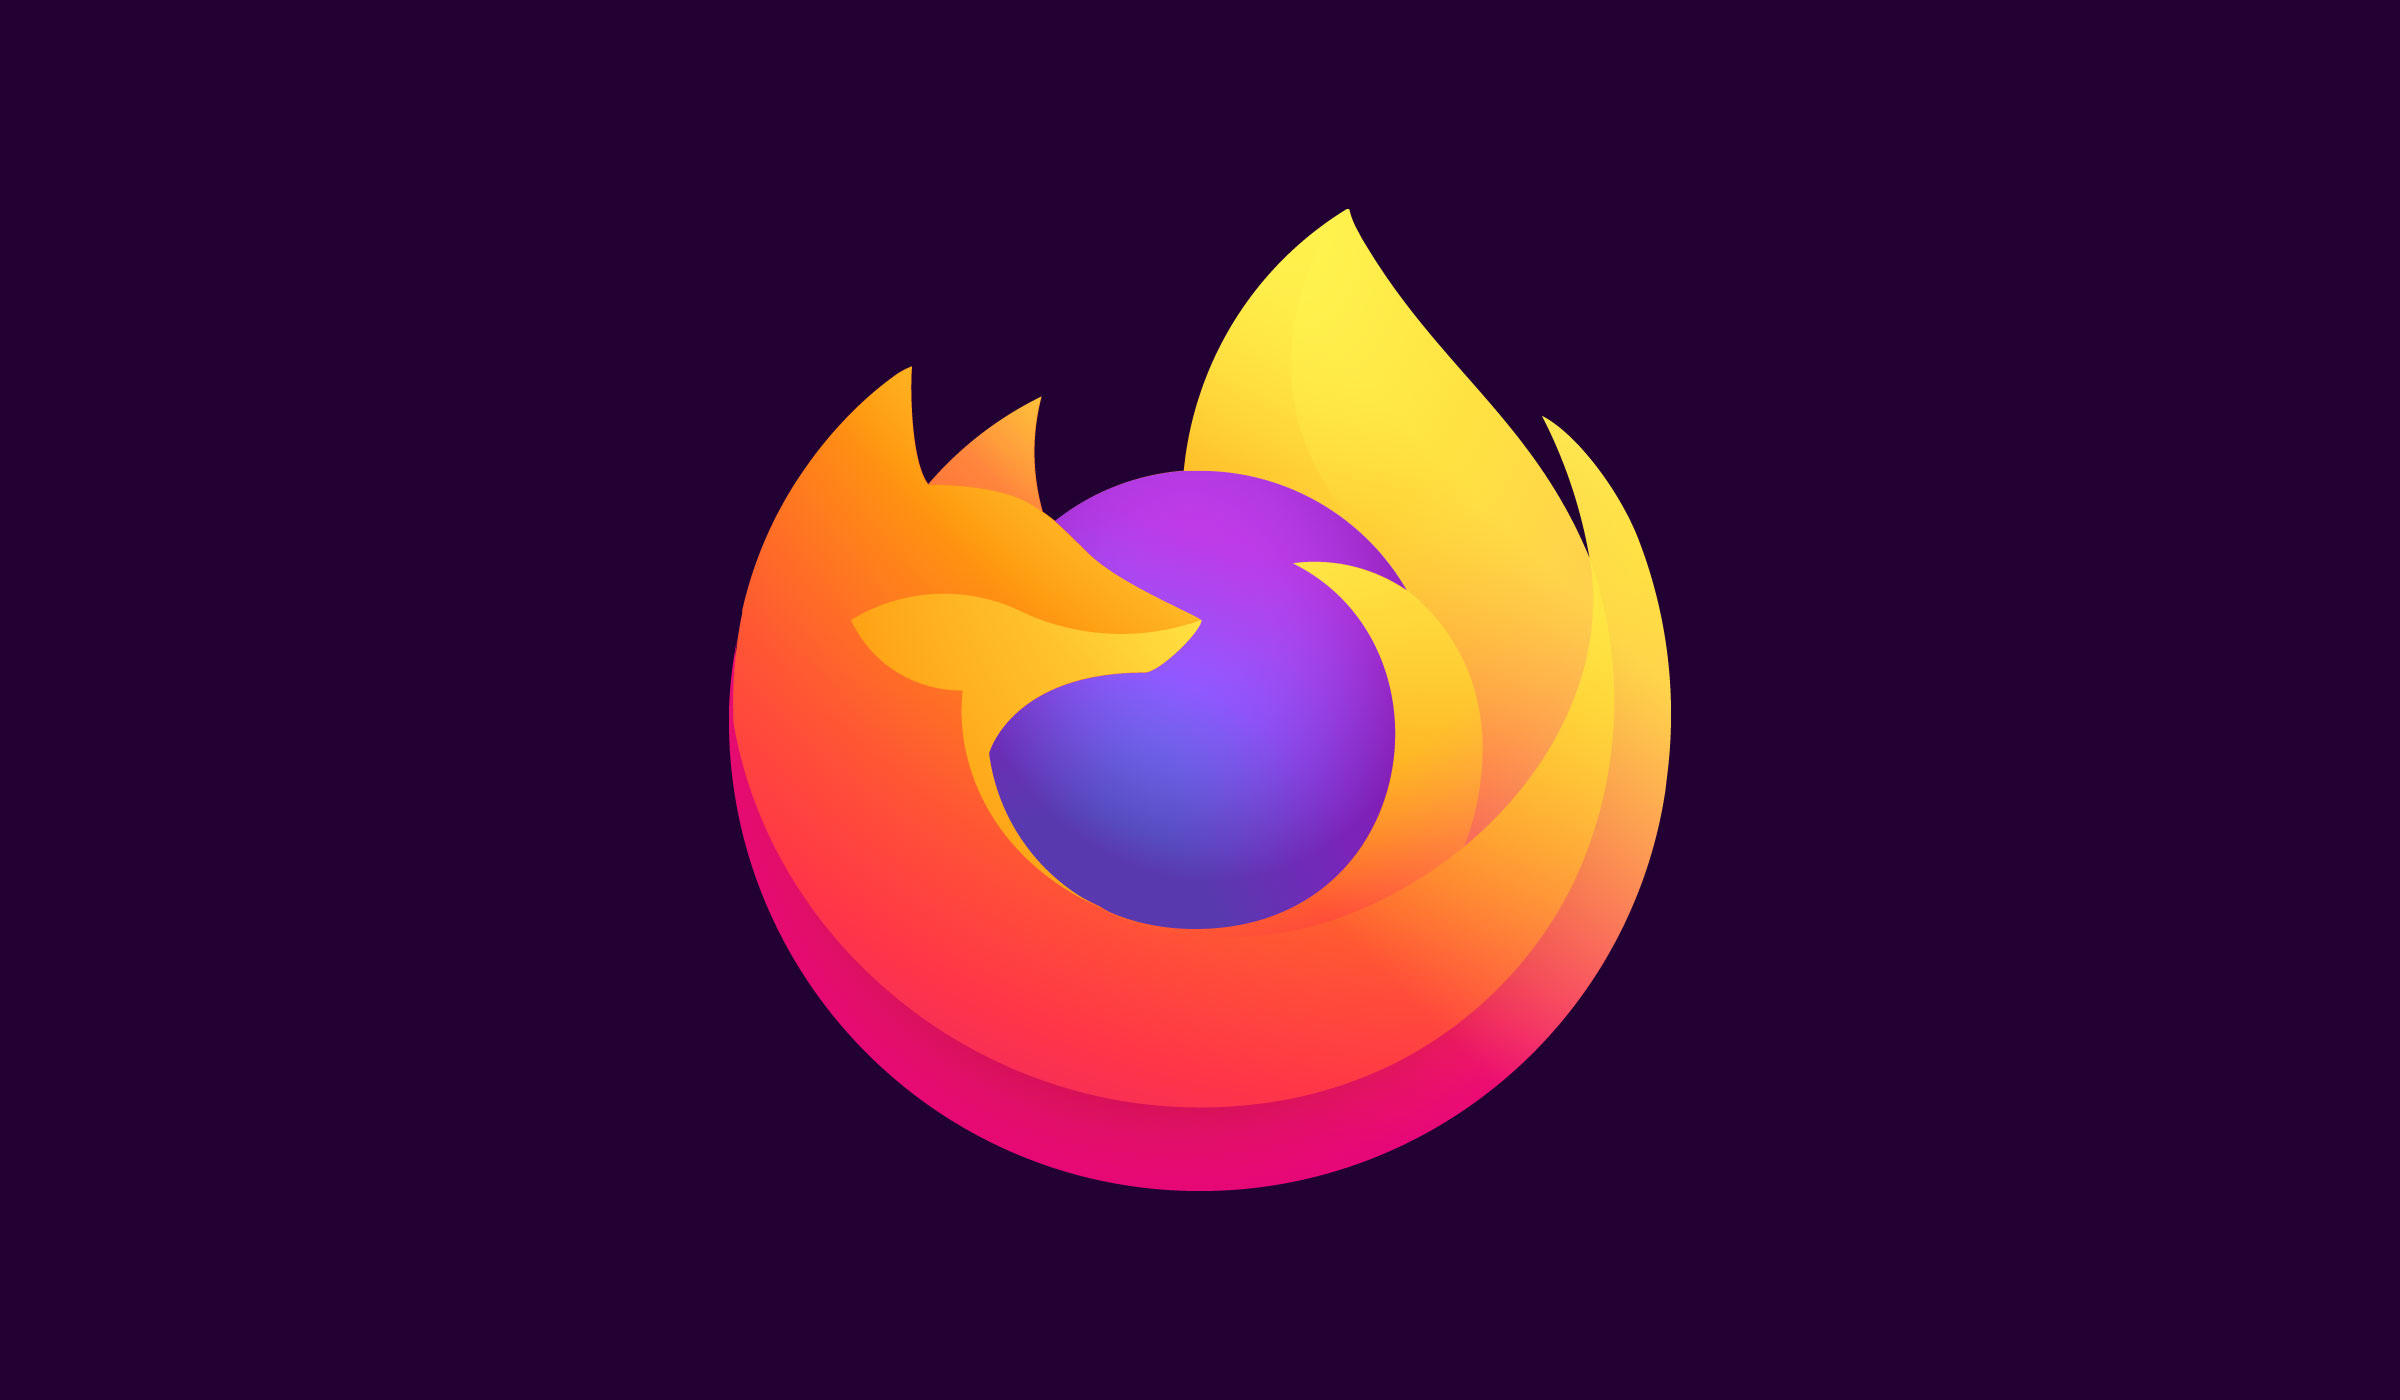 A simplified new Firefox icon